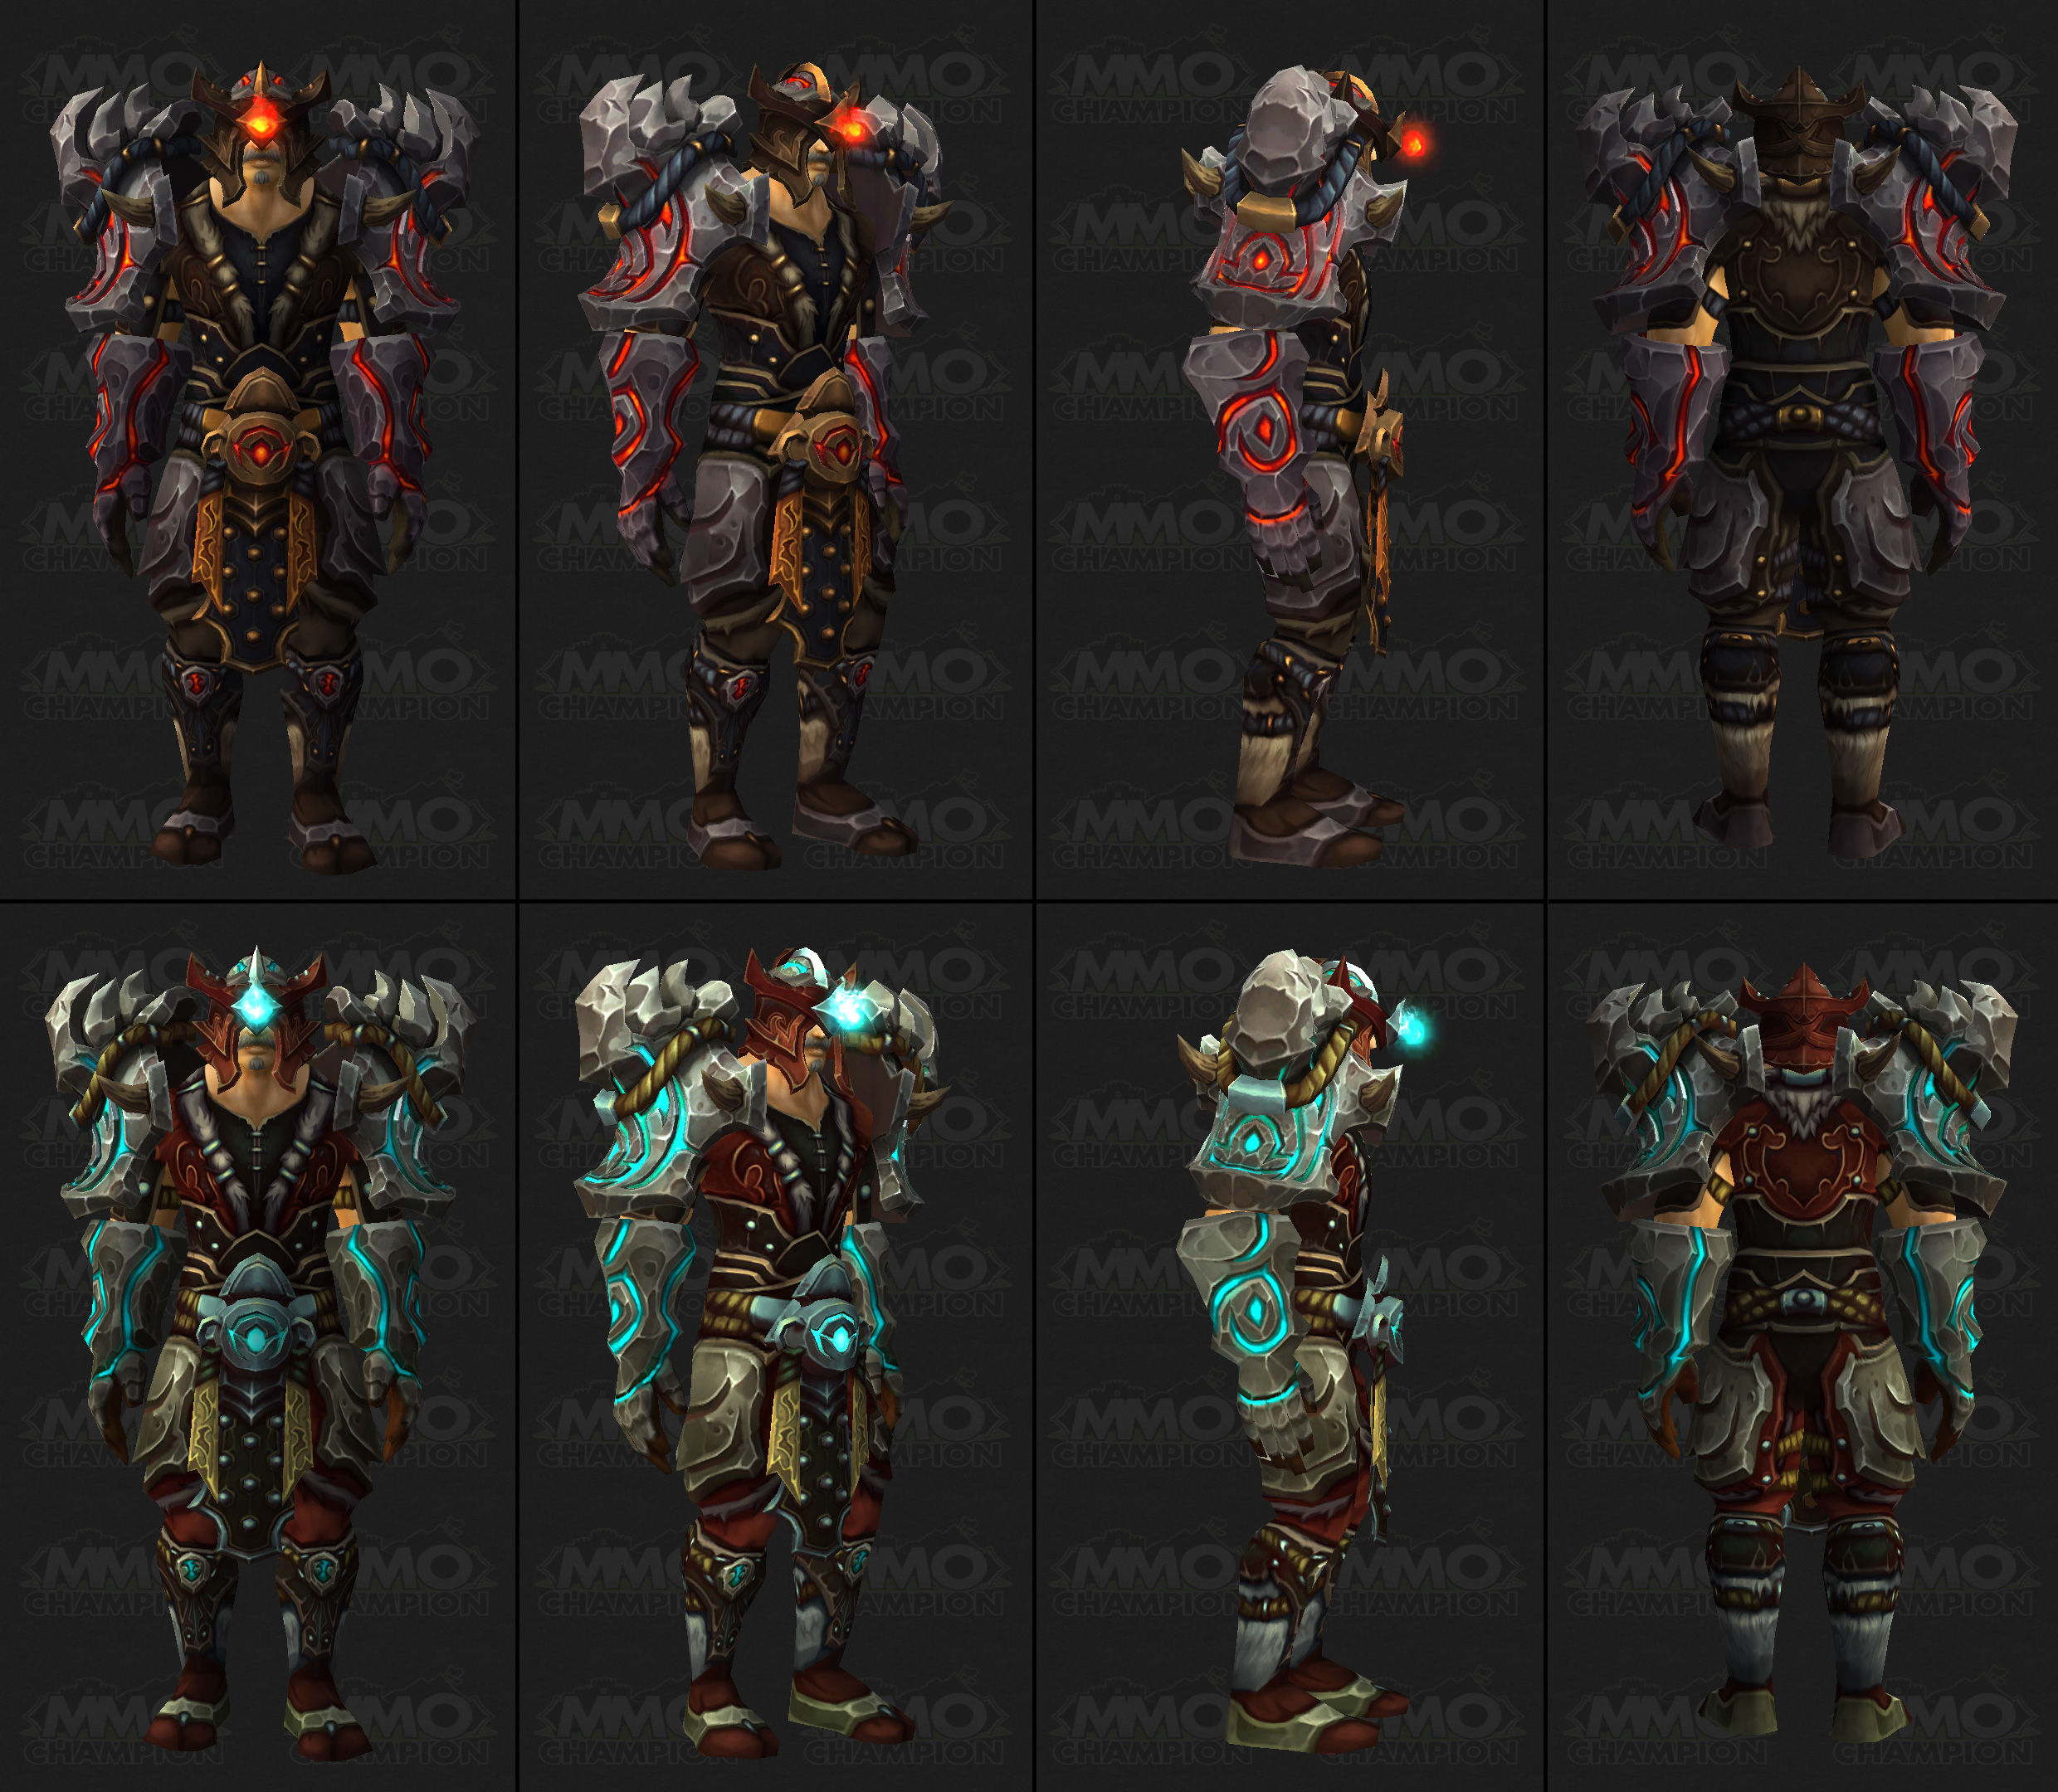 Warlords of draenor nude patch horde amp neutral - 3 part 4